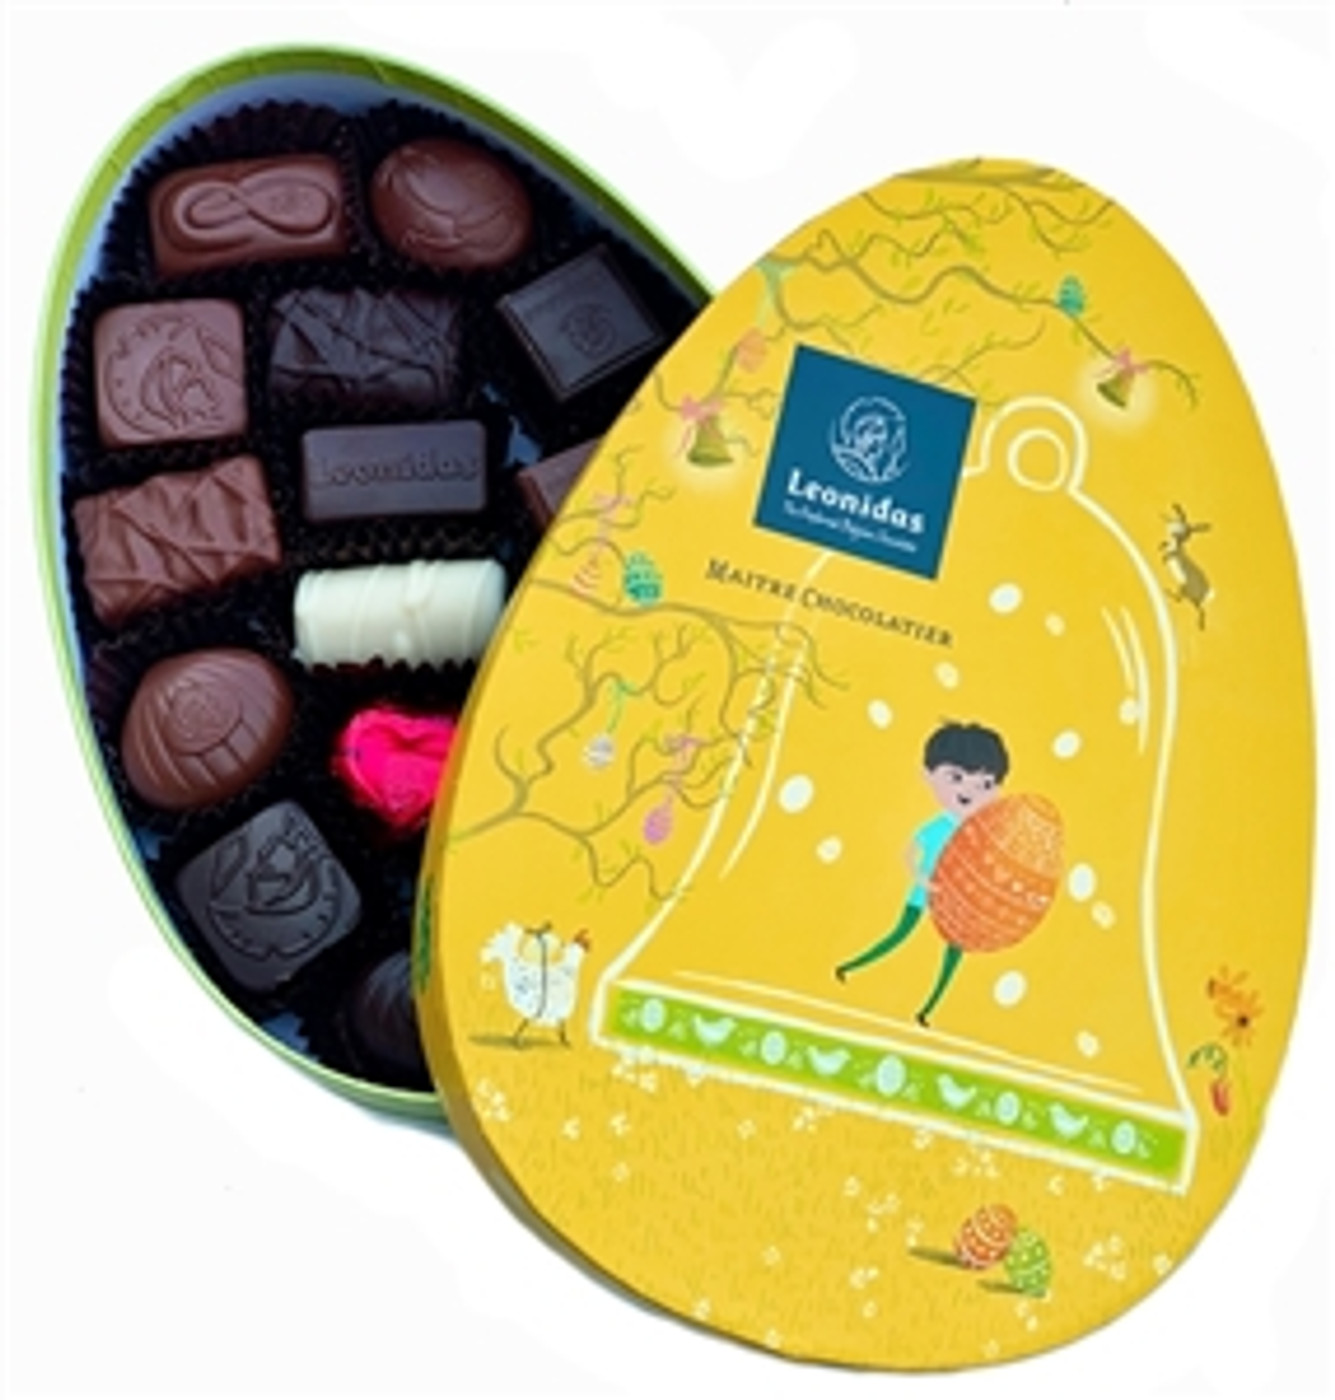 Easter Box with Assorted Leonidas Chocolates